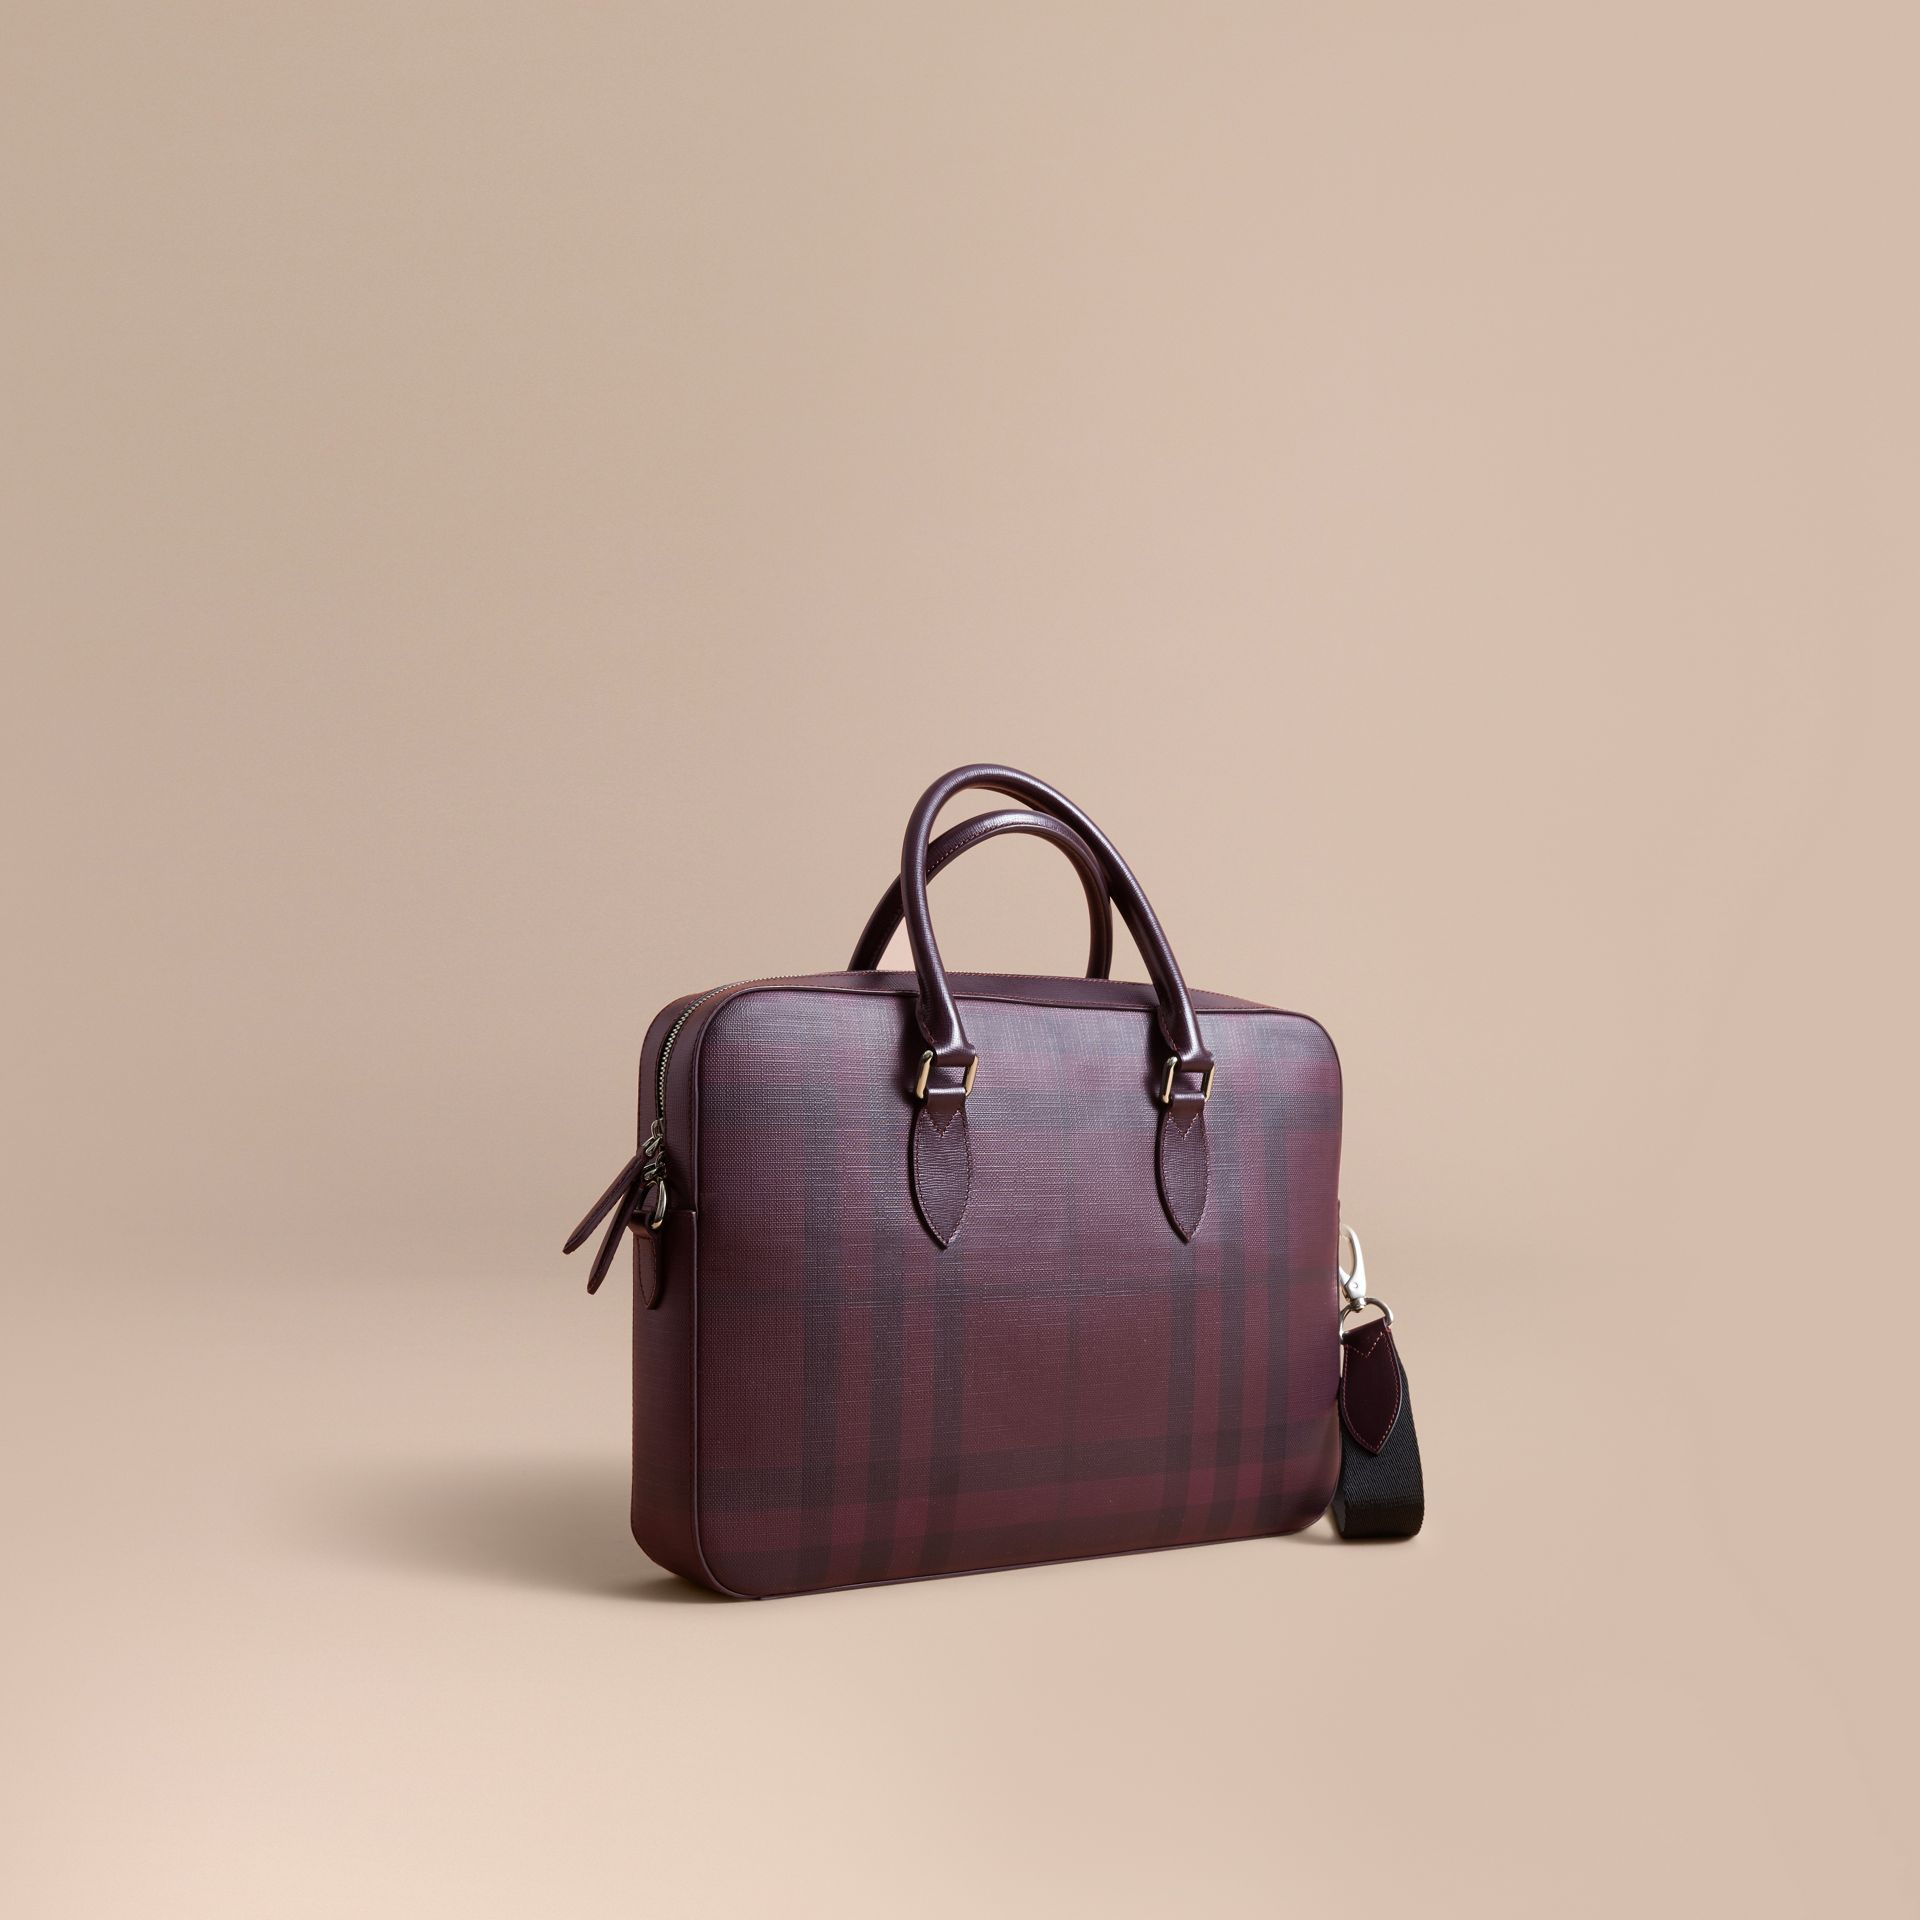 Medium Leather Trim London Check Briefcase in Deep Claret - Men | Burberry - gallery image 1